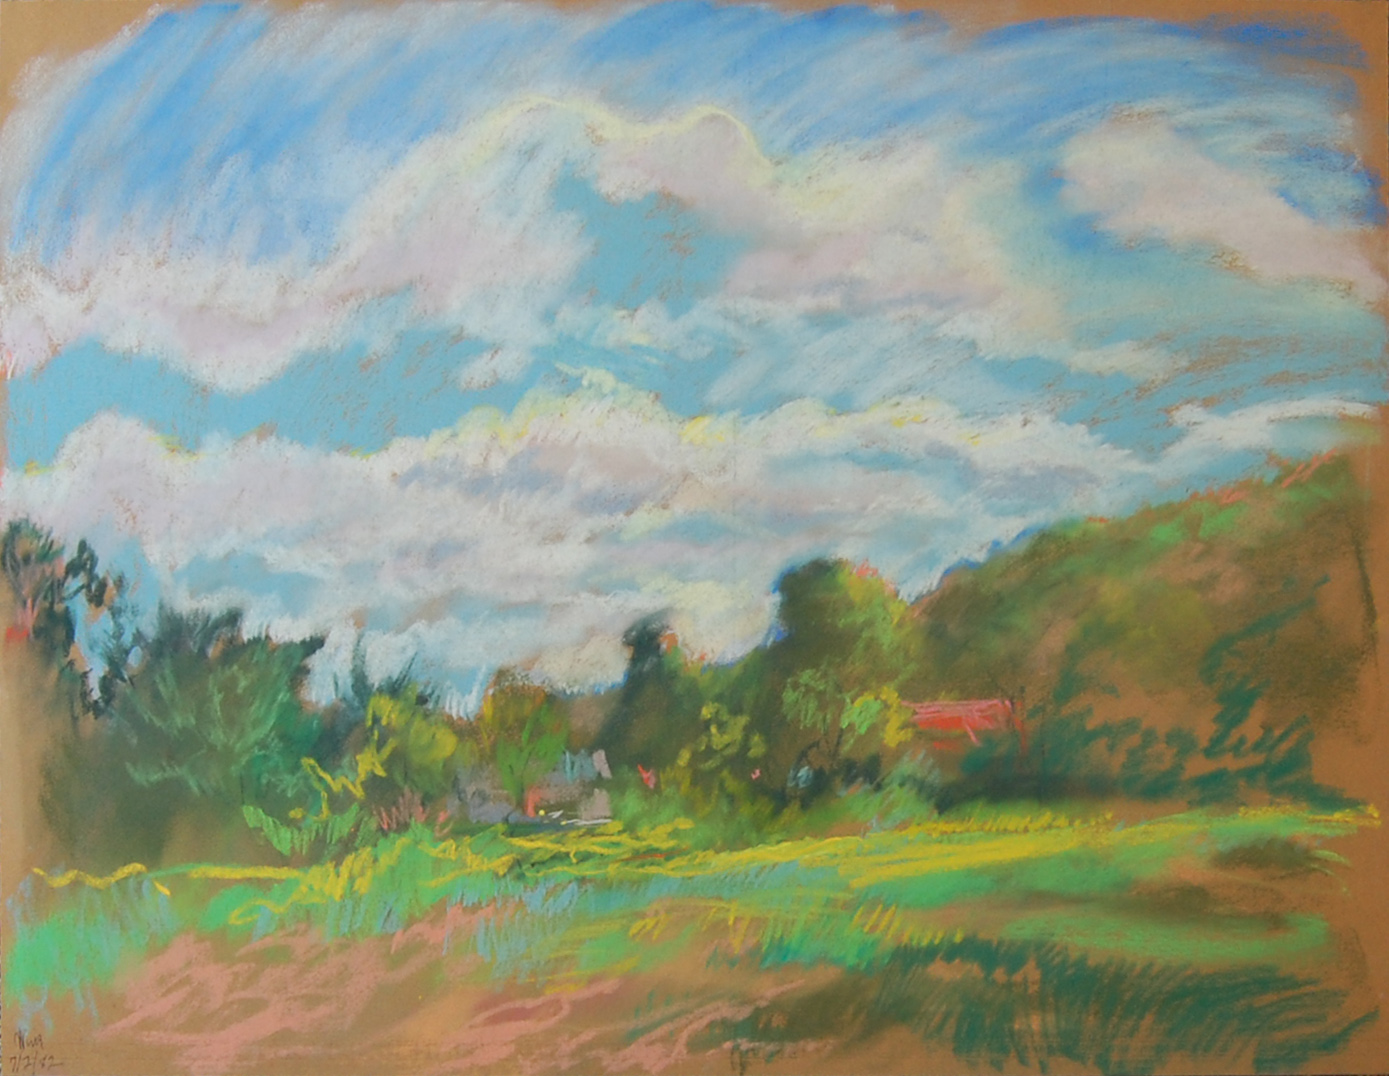 'Untitled Meadow 1' by Ron Wing | Courtesy of The Slater Museum